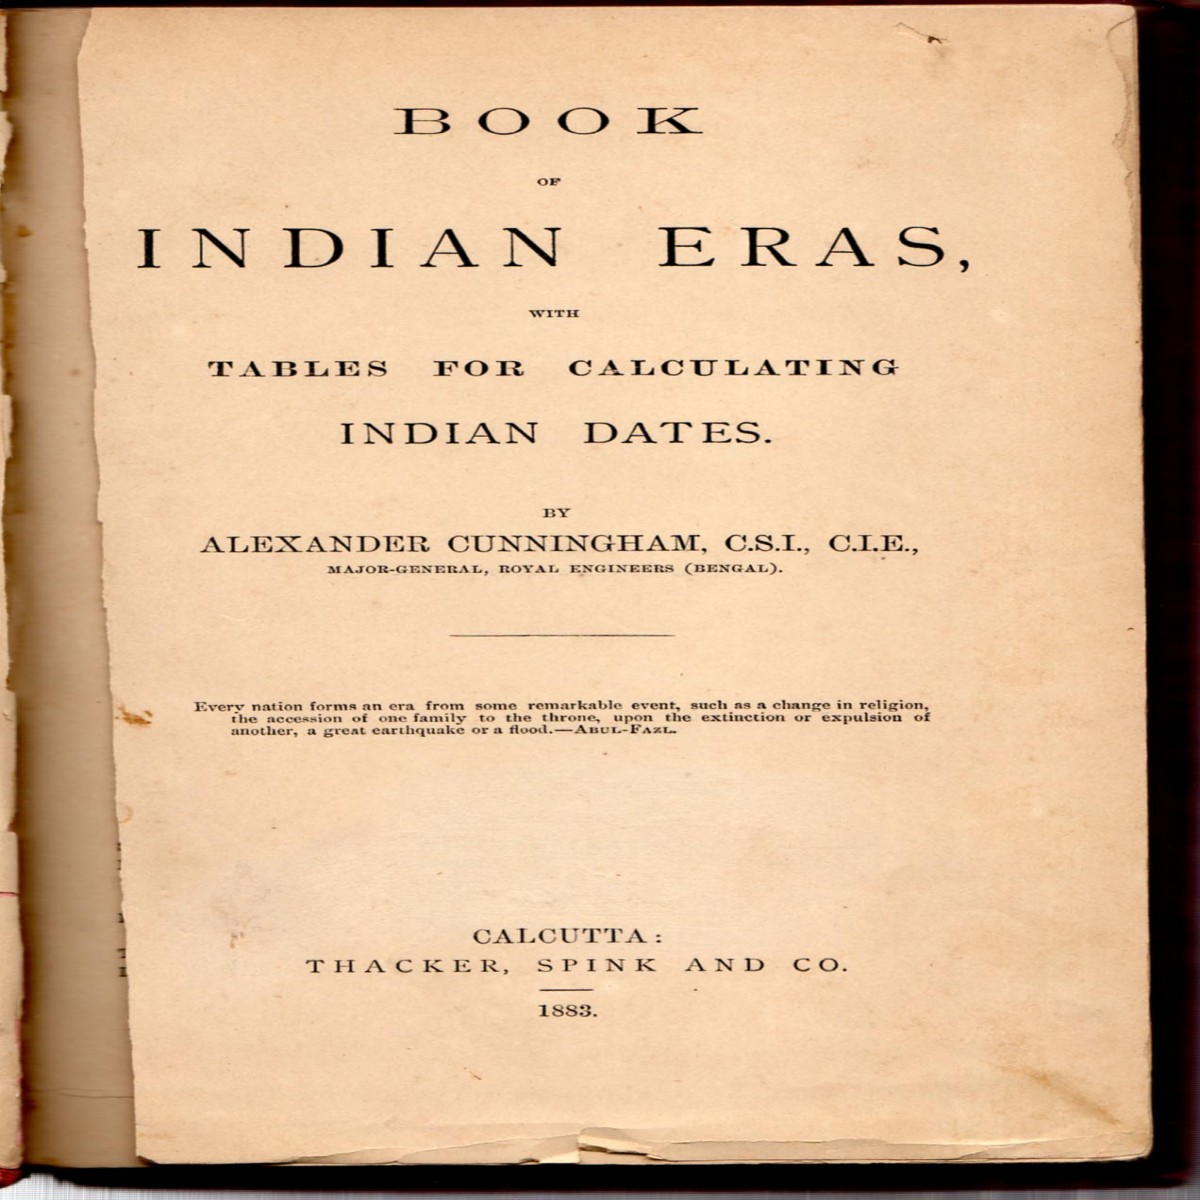 Book of Indian Eras, with Tables For Calculating Indian Dates (new binding)